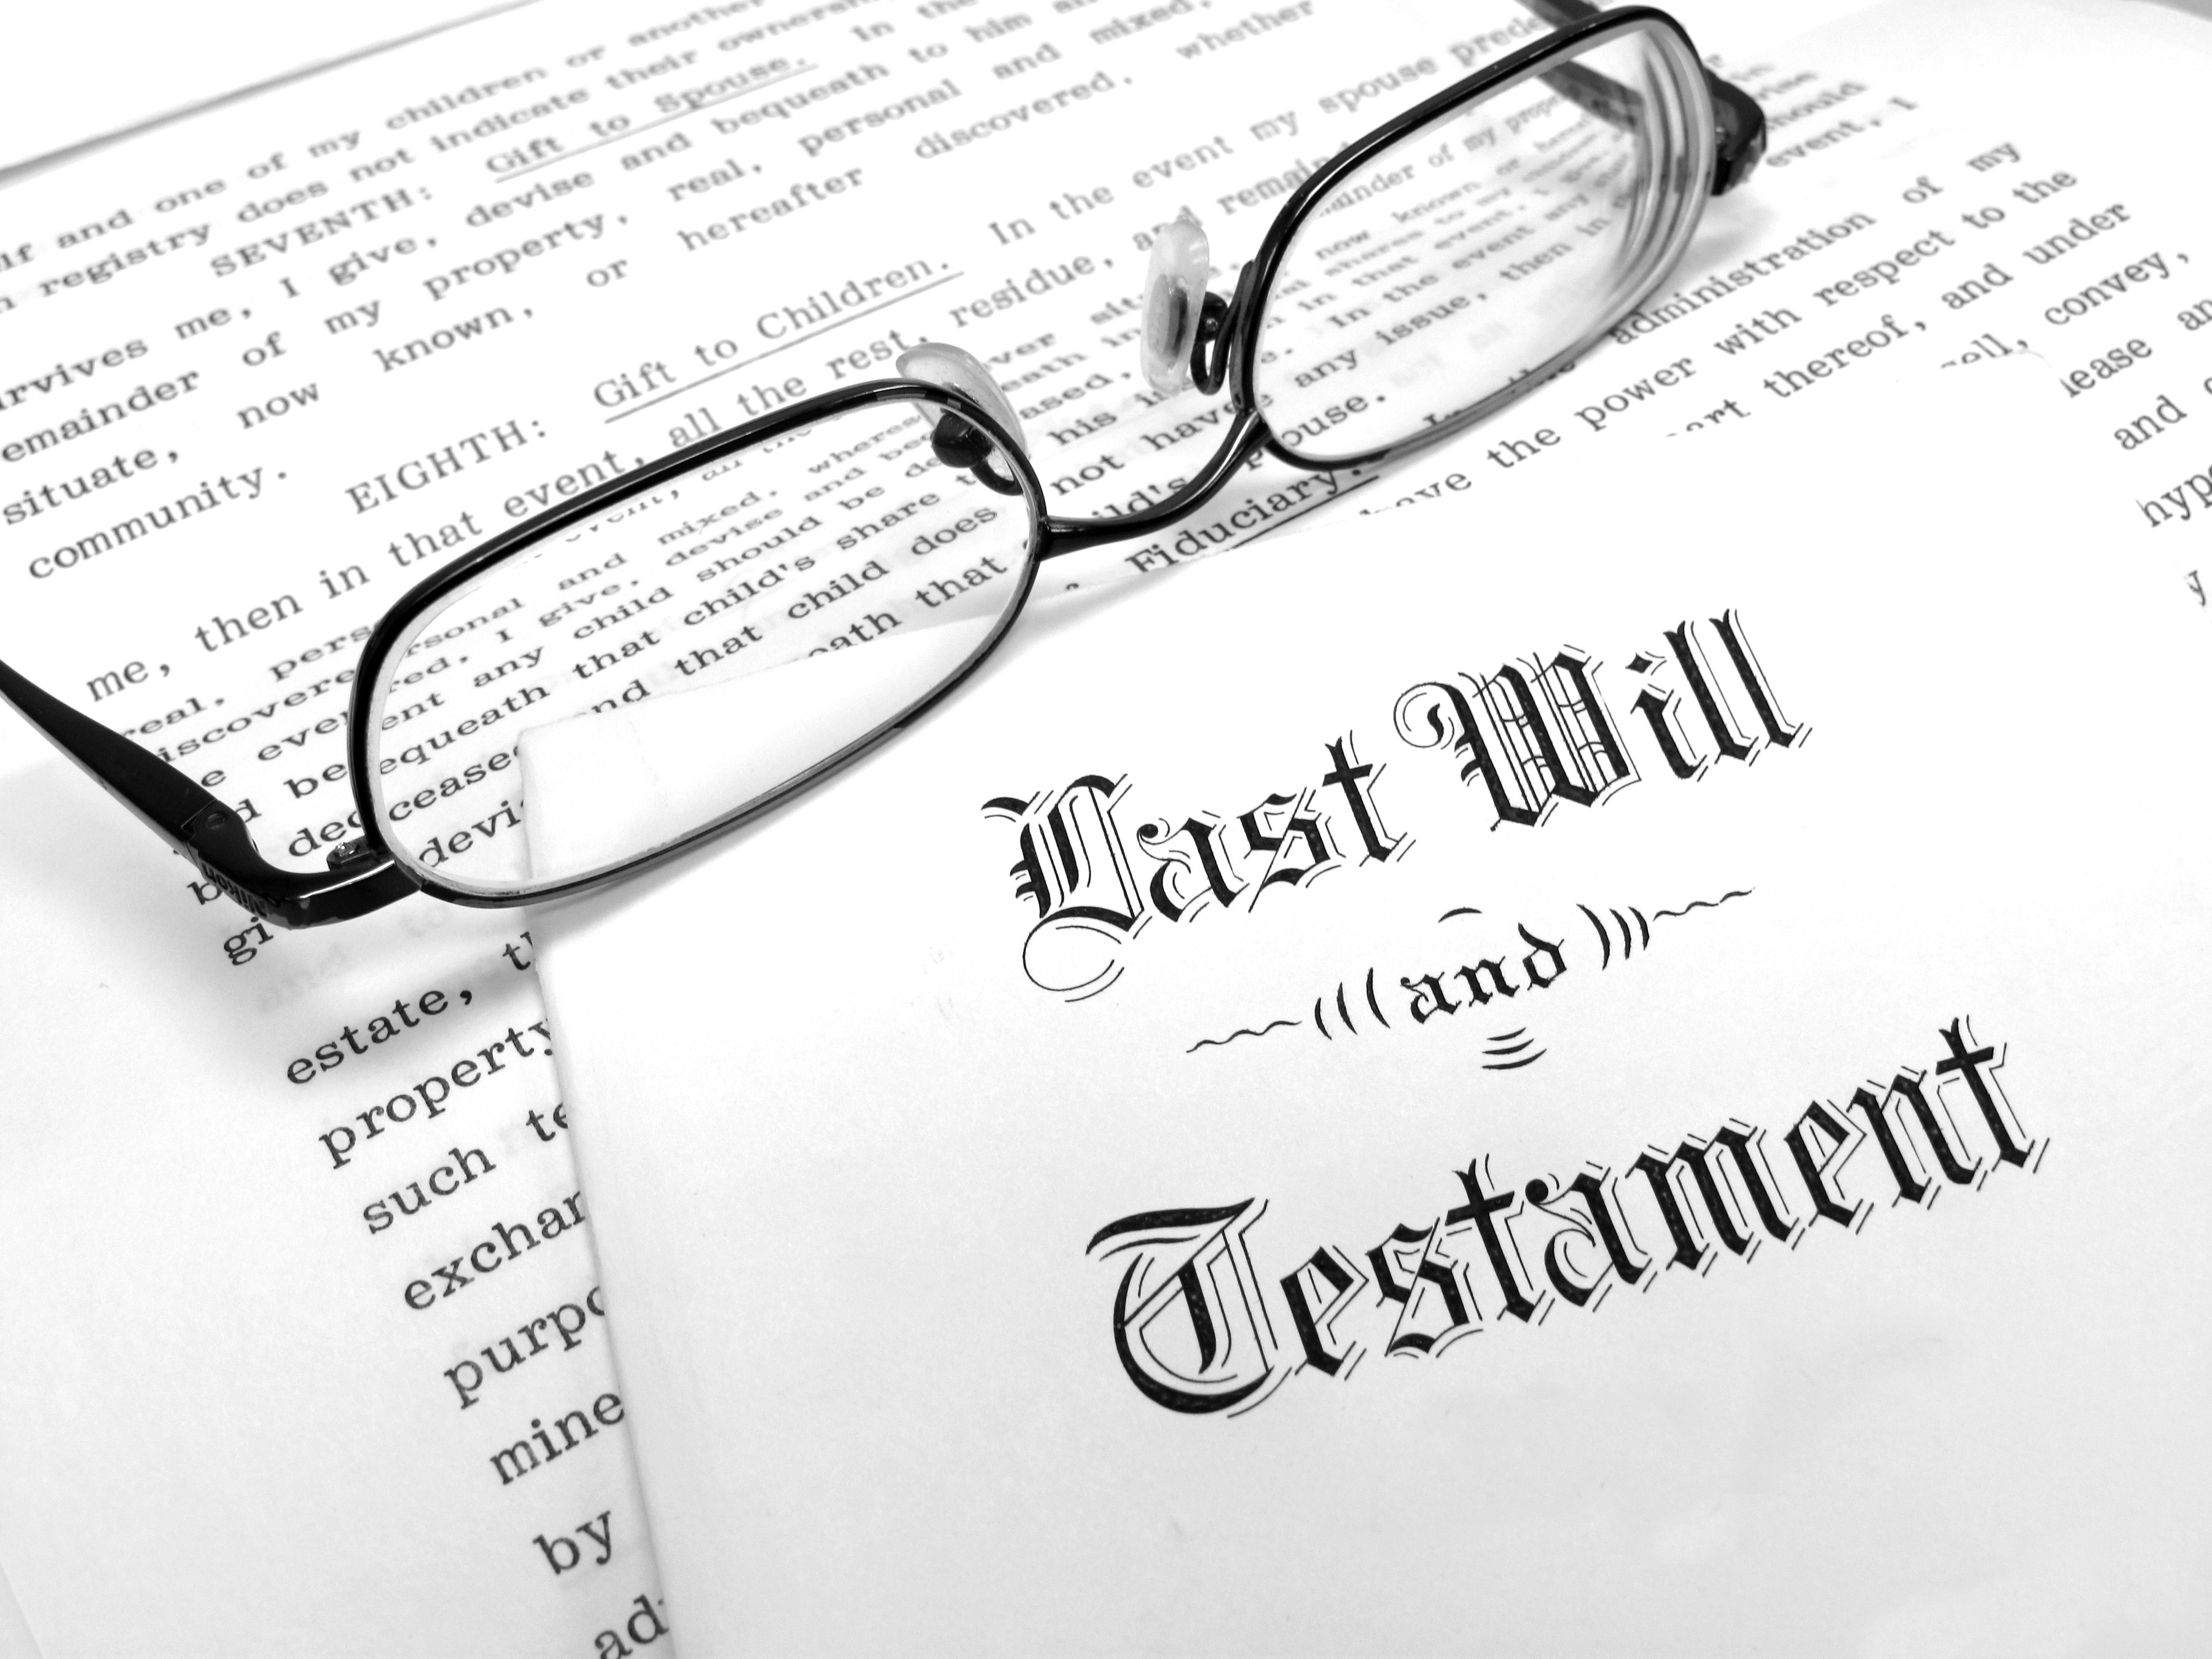 How to Find a Probated Will in Texas